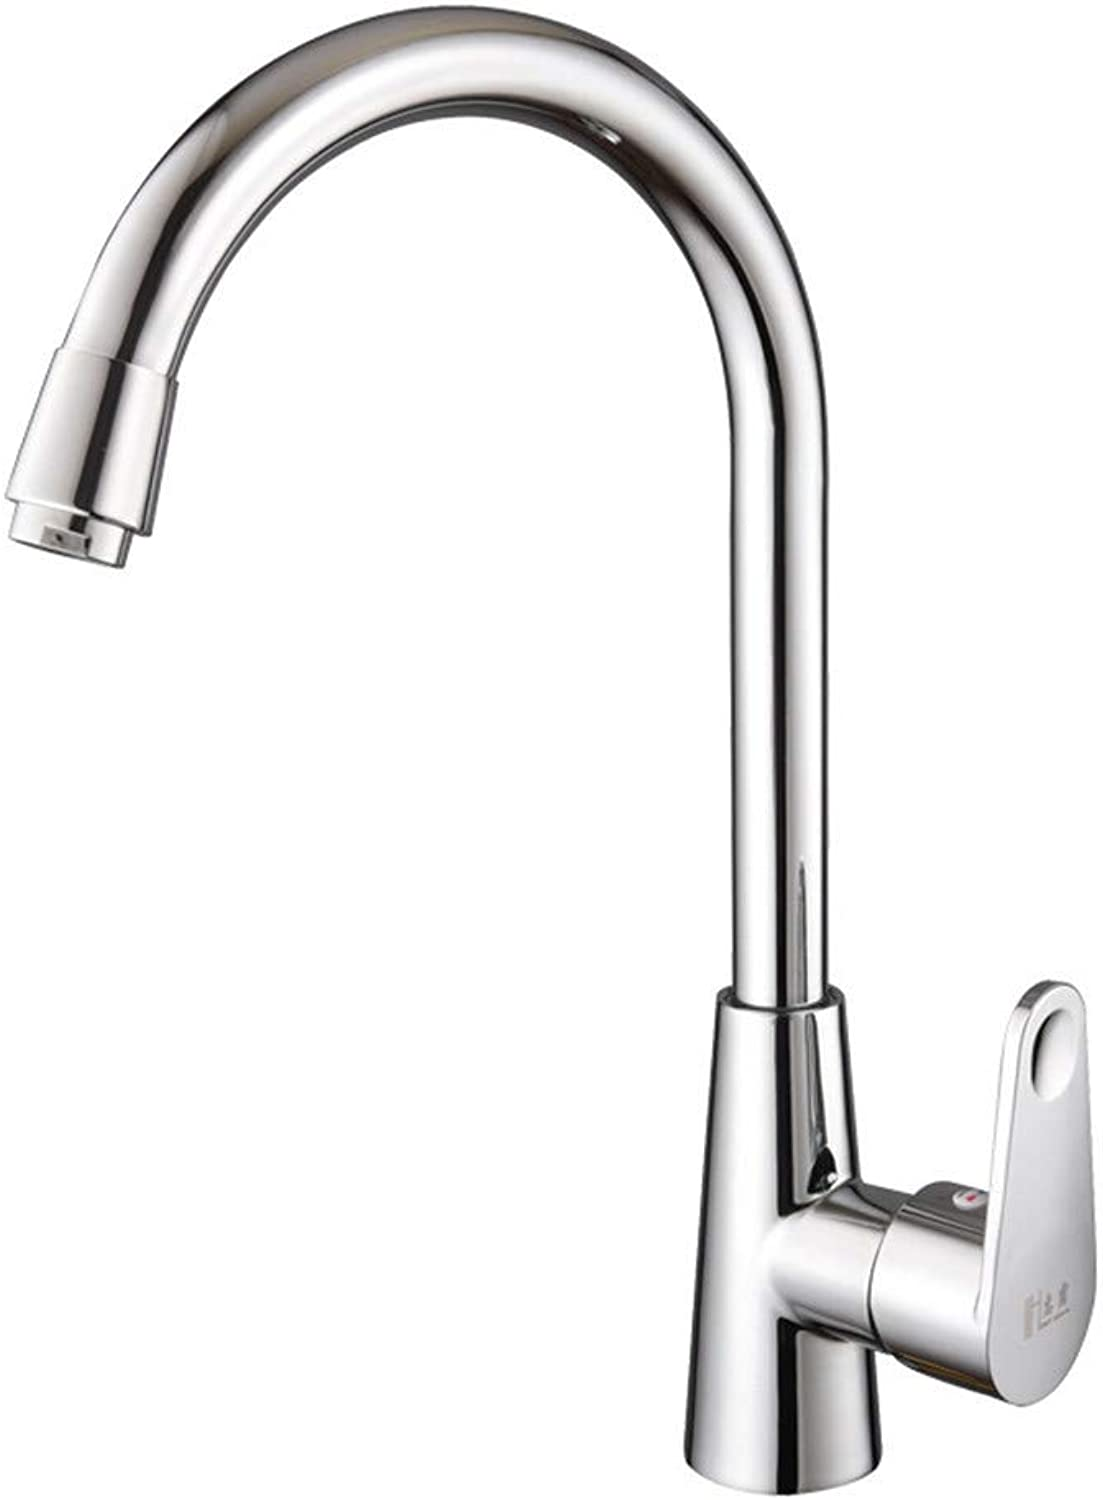 XPYFaucet Bathroom Kitchen Sink Faucet,Hot And Cold Skin Tap, Copper Material